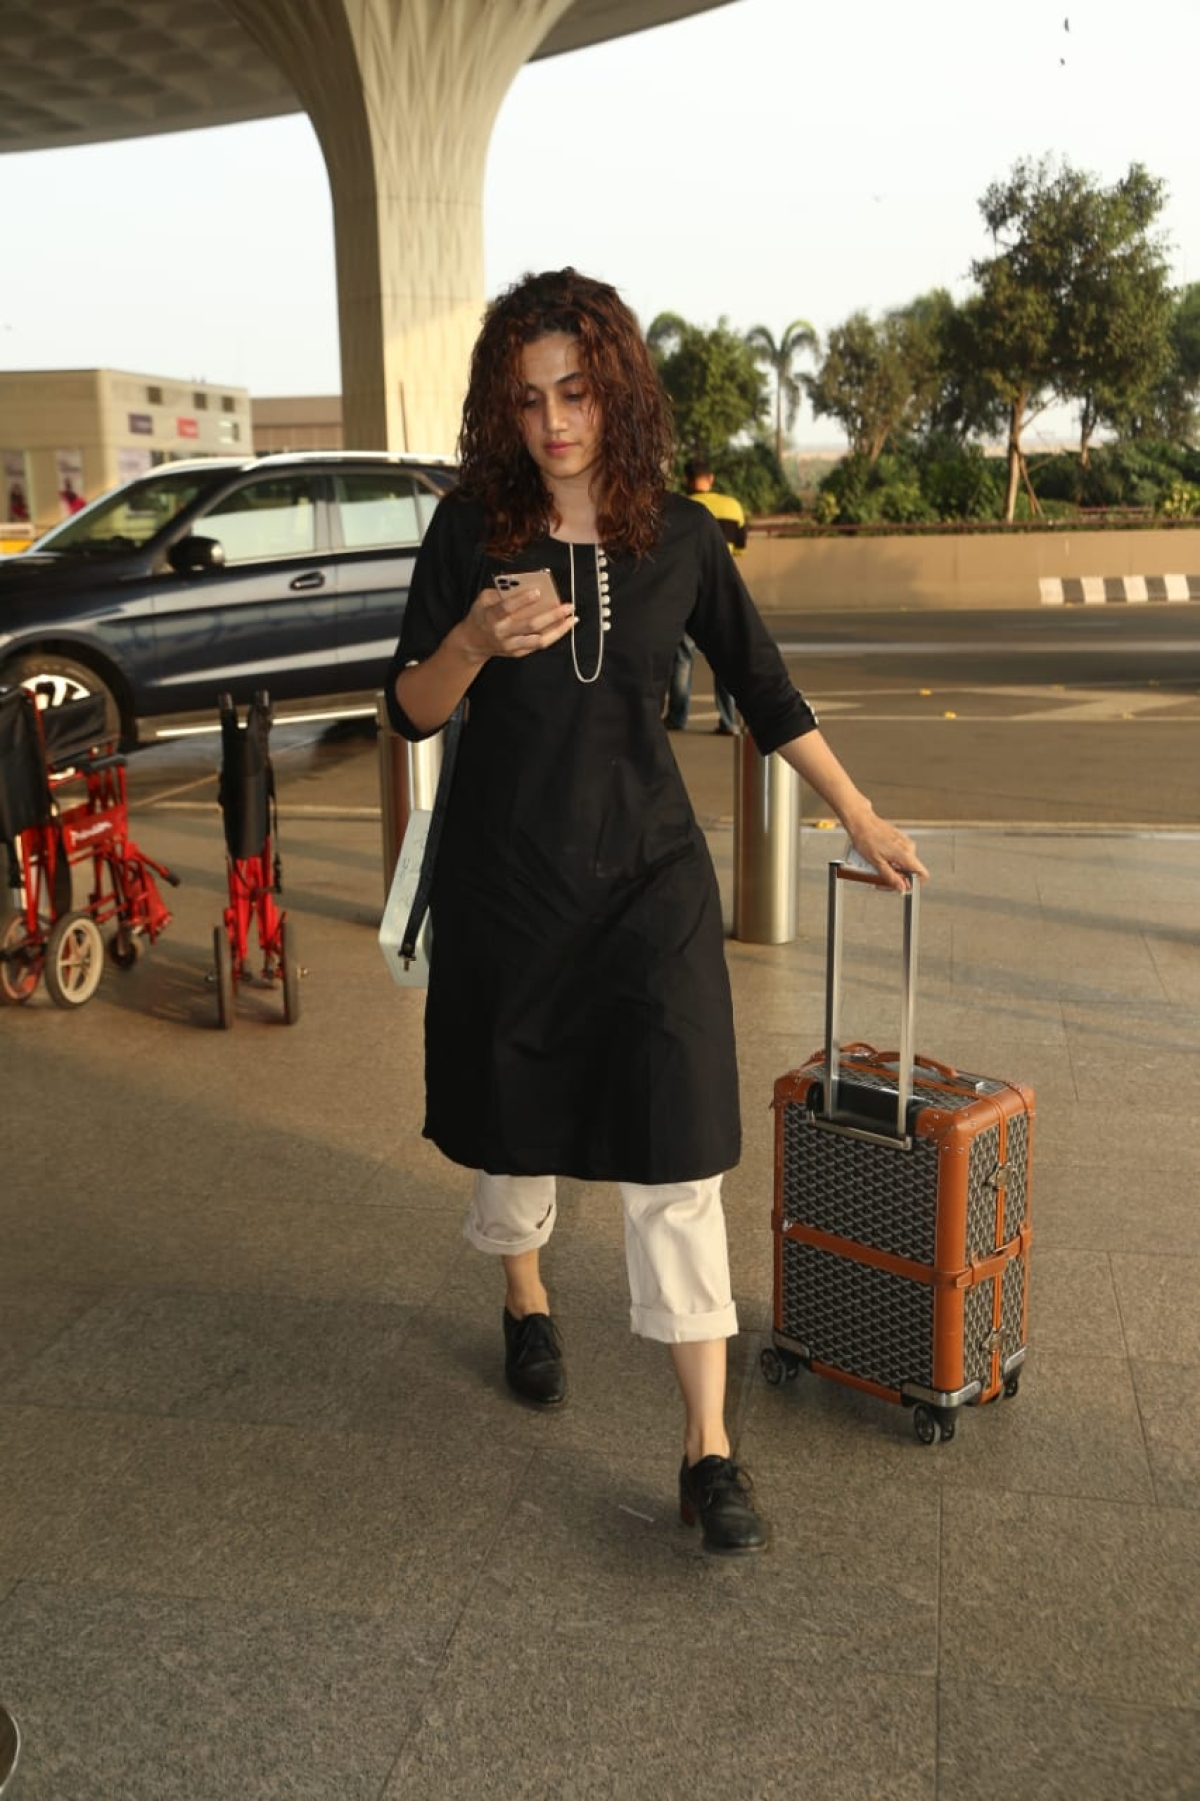 Cost of Taapsee Pannu's airport luggage can get you 62,000 Vada Pavs